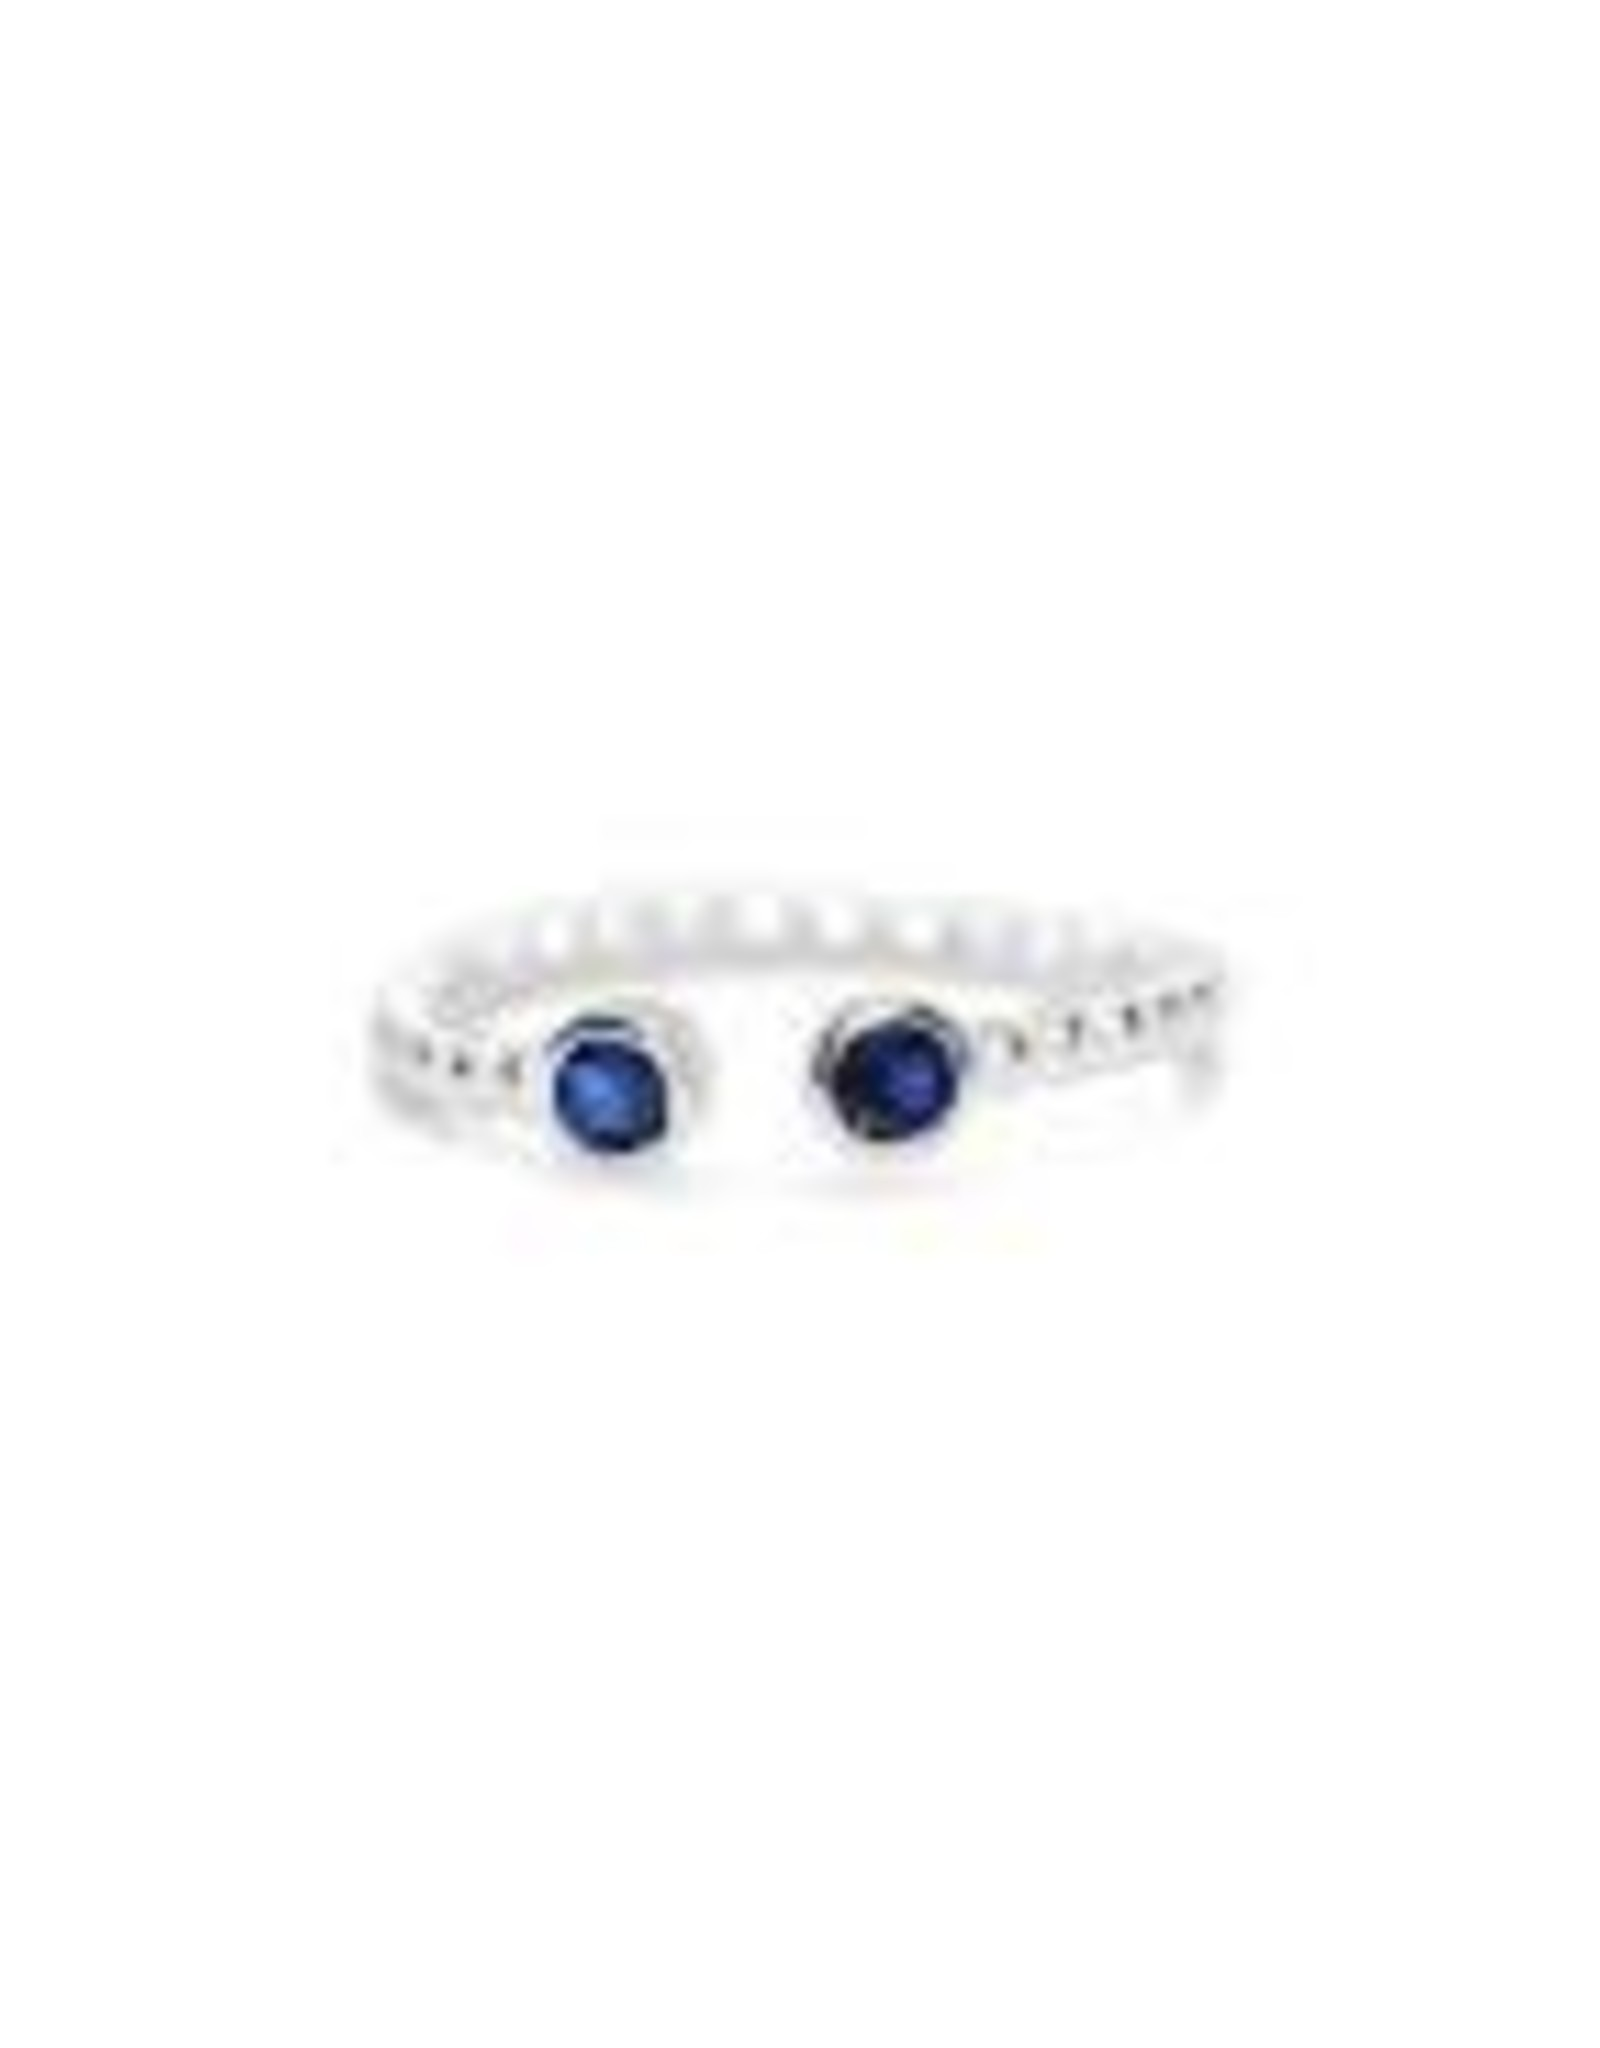 Stia Jewelry Droplet Wire Ring - Sapphire